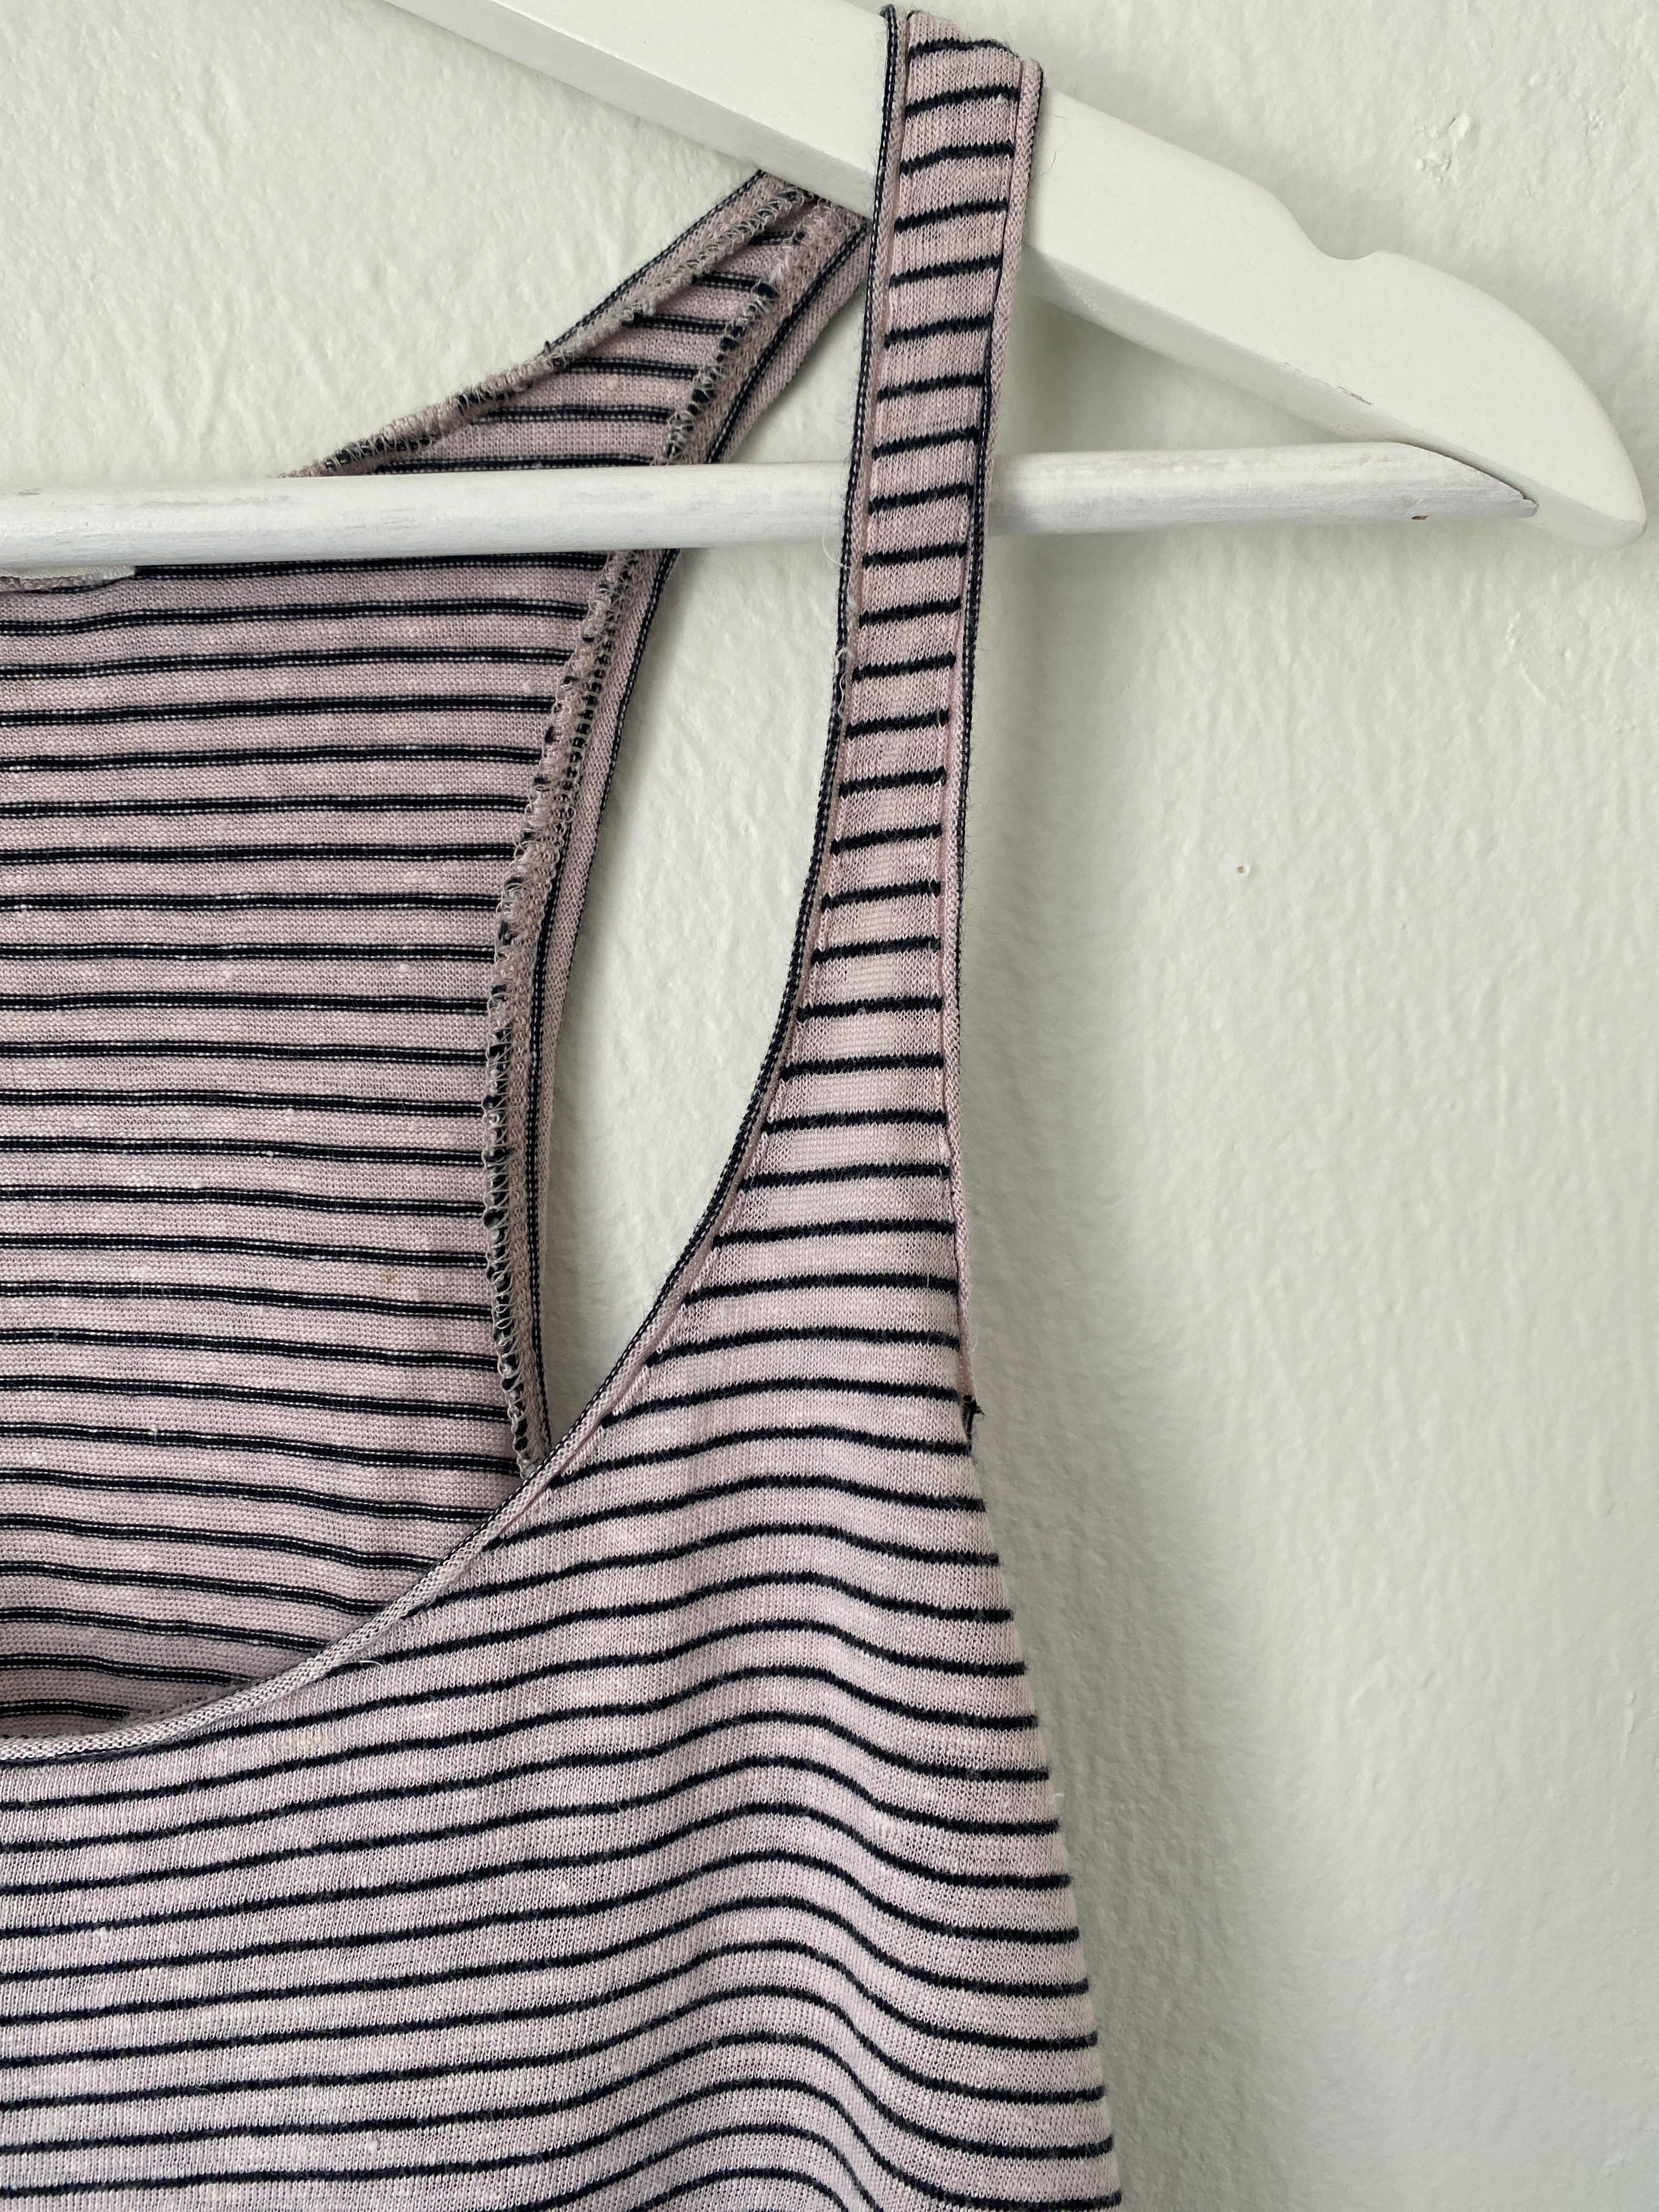 Isabele Marrant Etoile Striped Tank Top